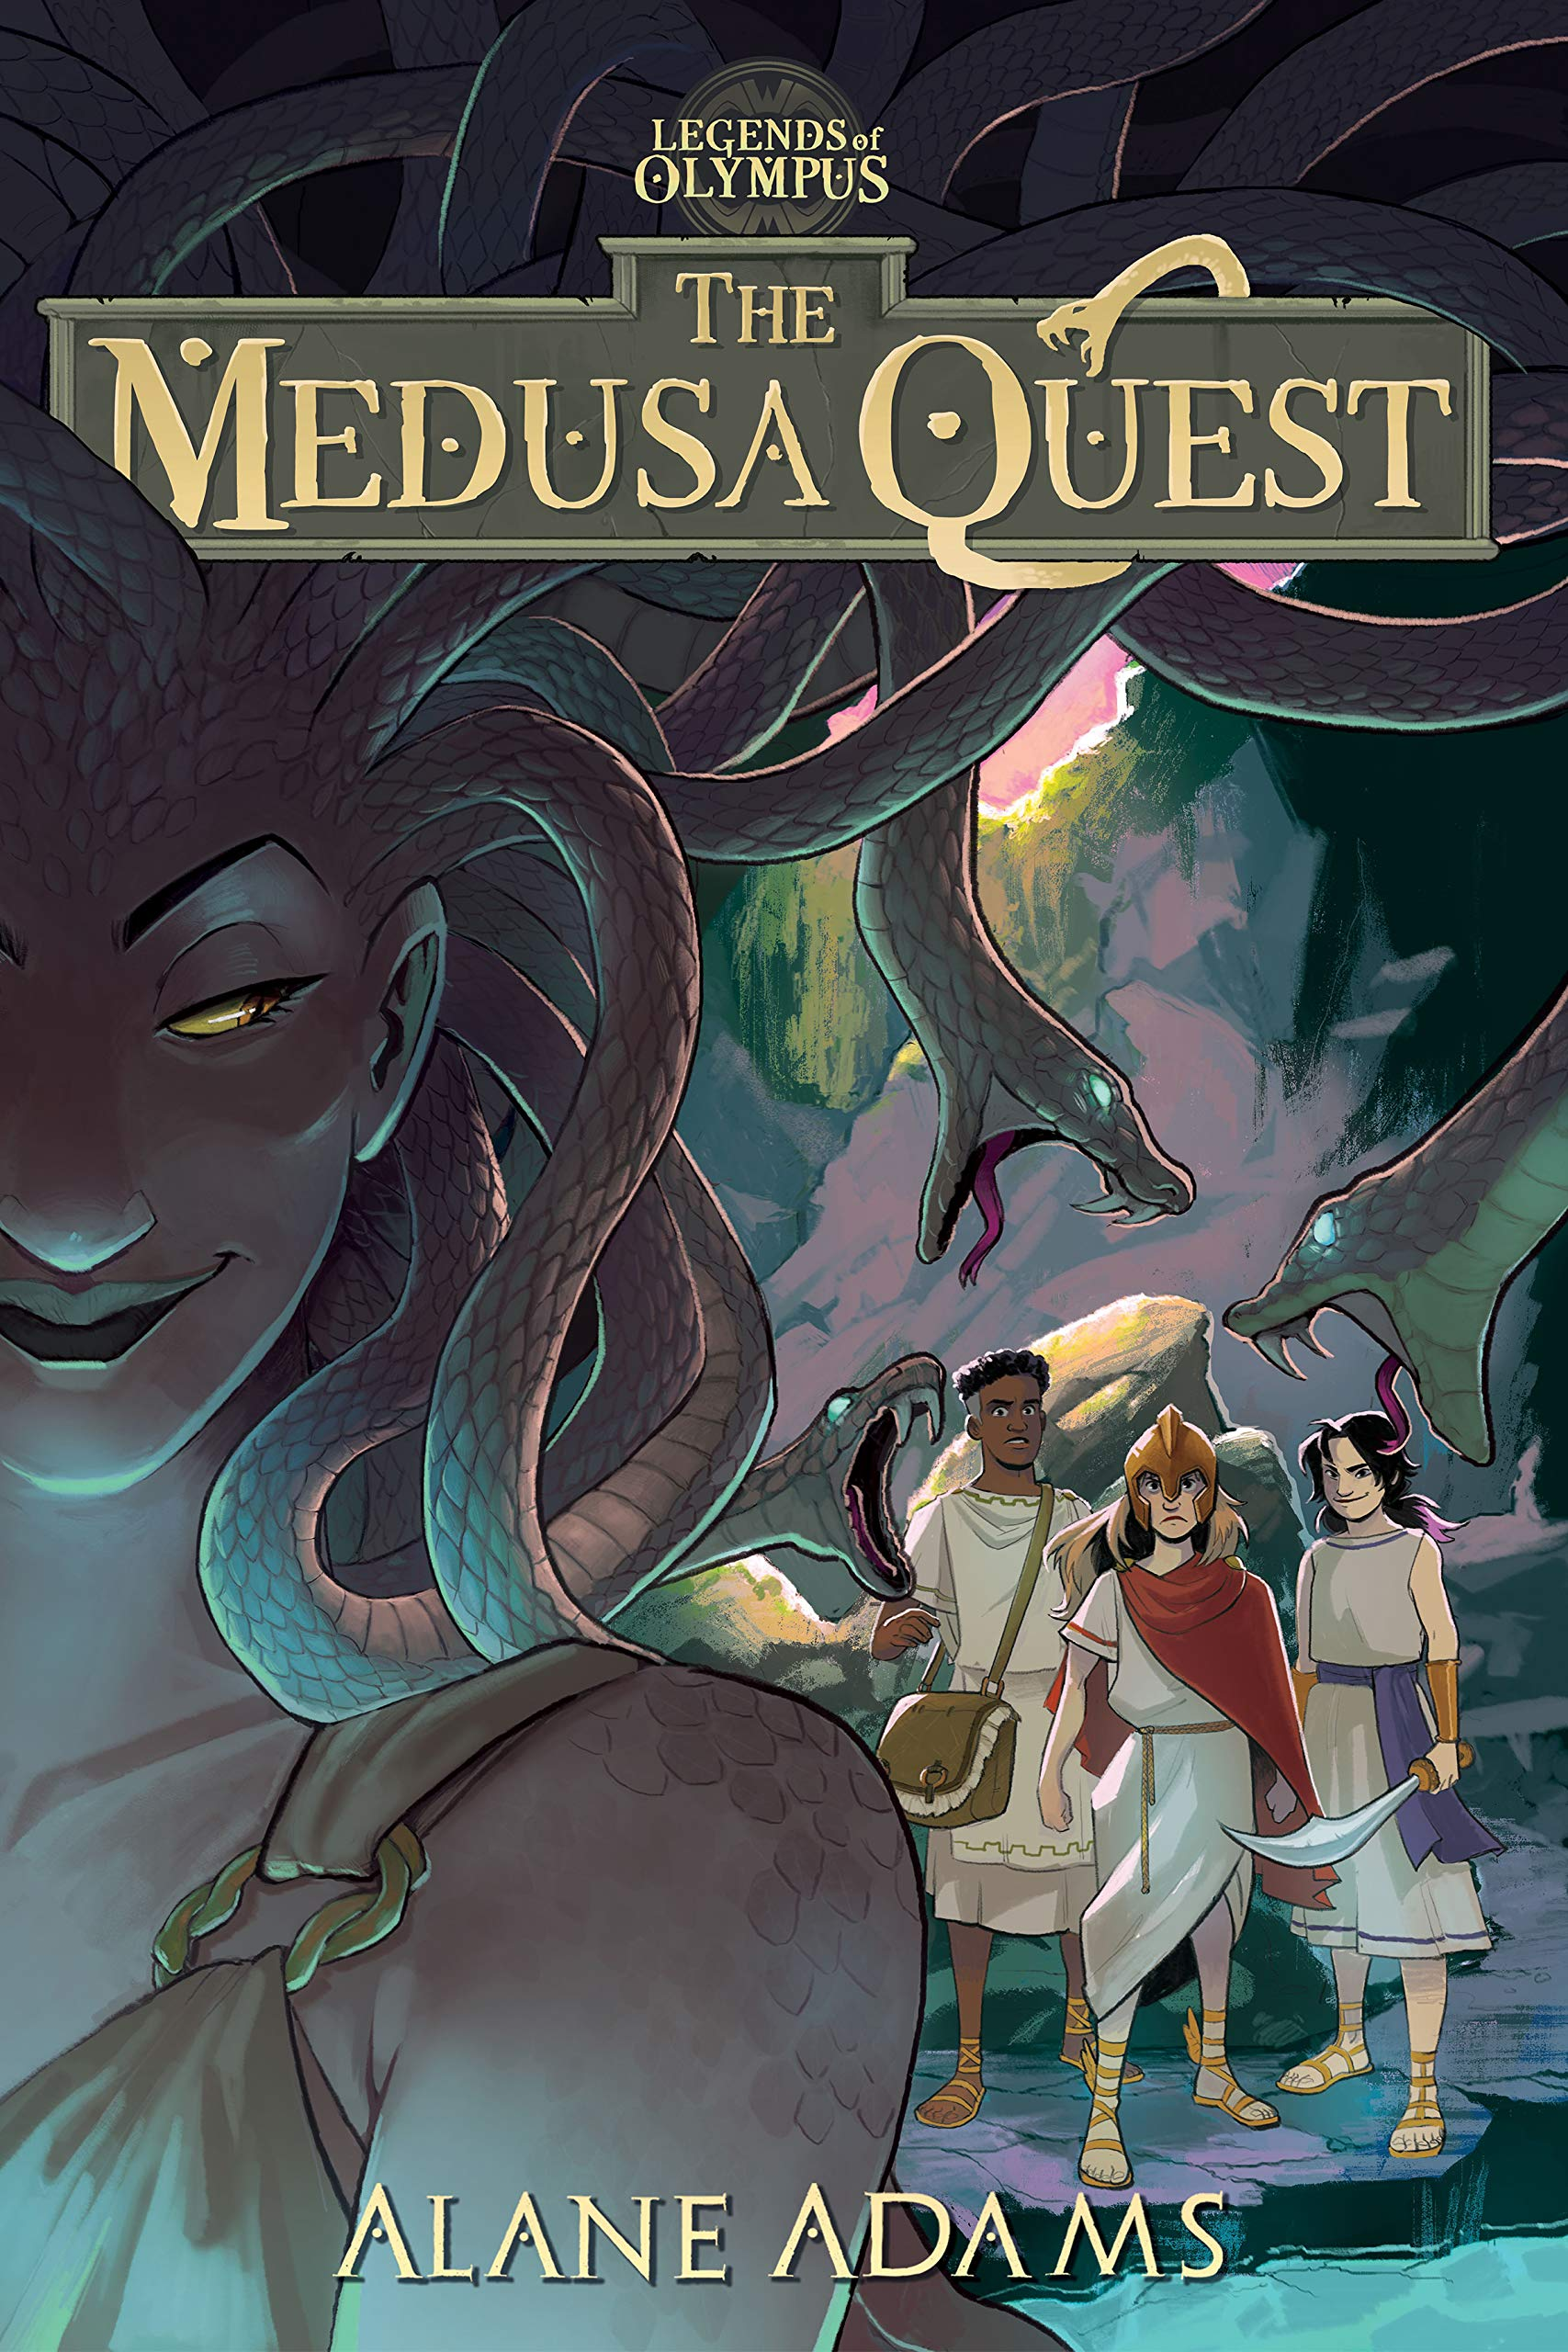 The Medusa Quest: The Legends of Olympus, Book 2 (The Legends of Oympus,  2): Adams, Alane: 9781684630752: Amazon.com: Books